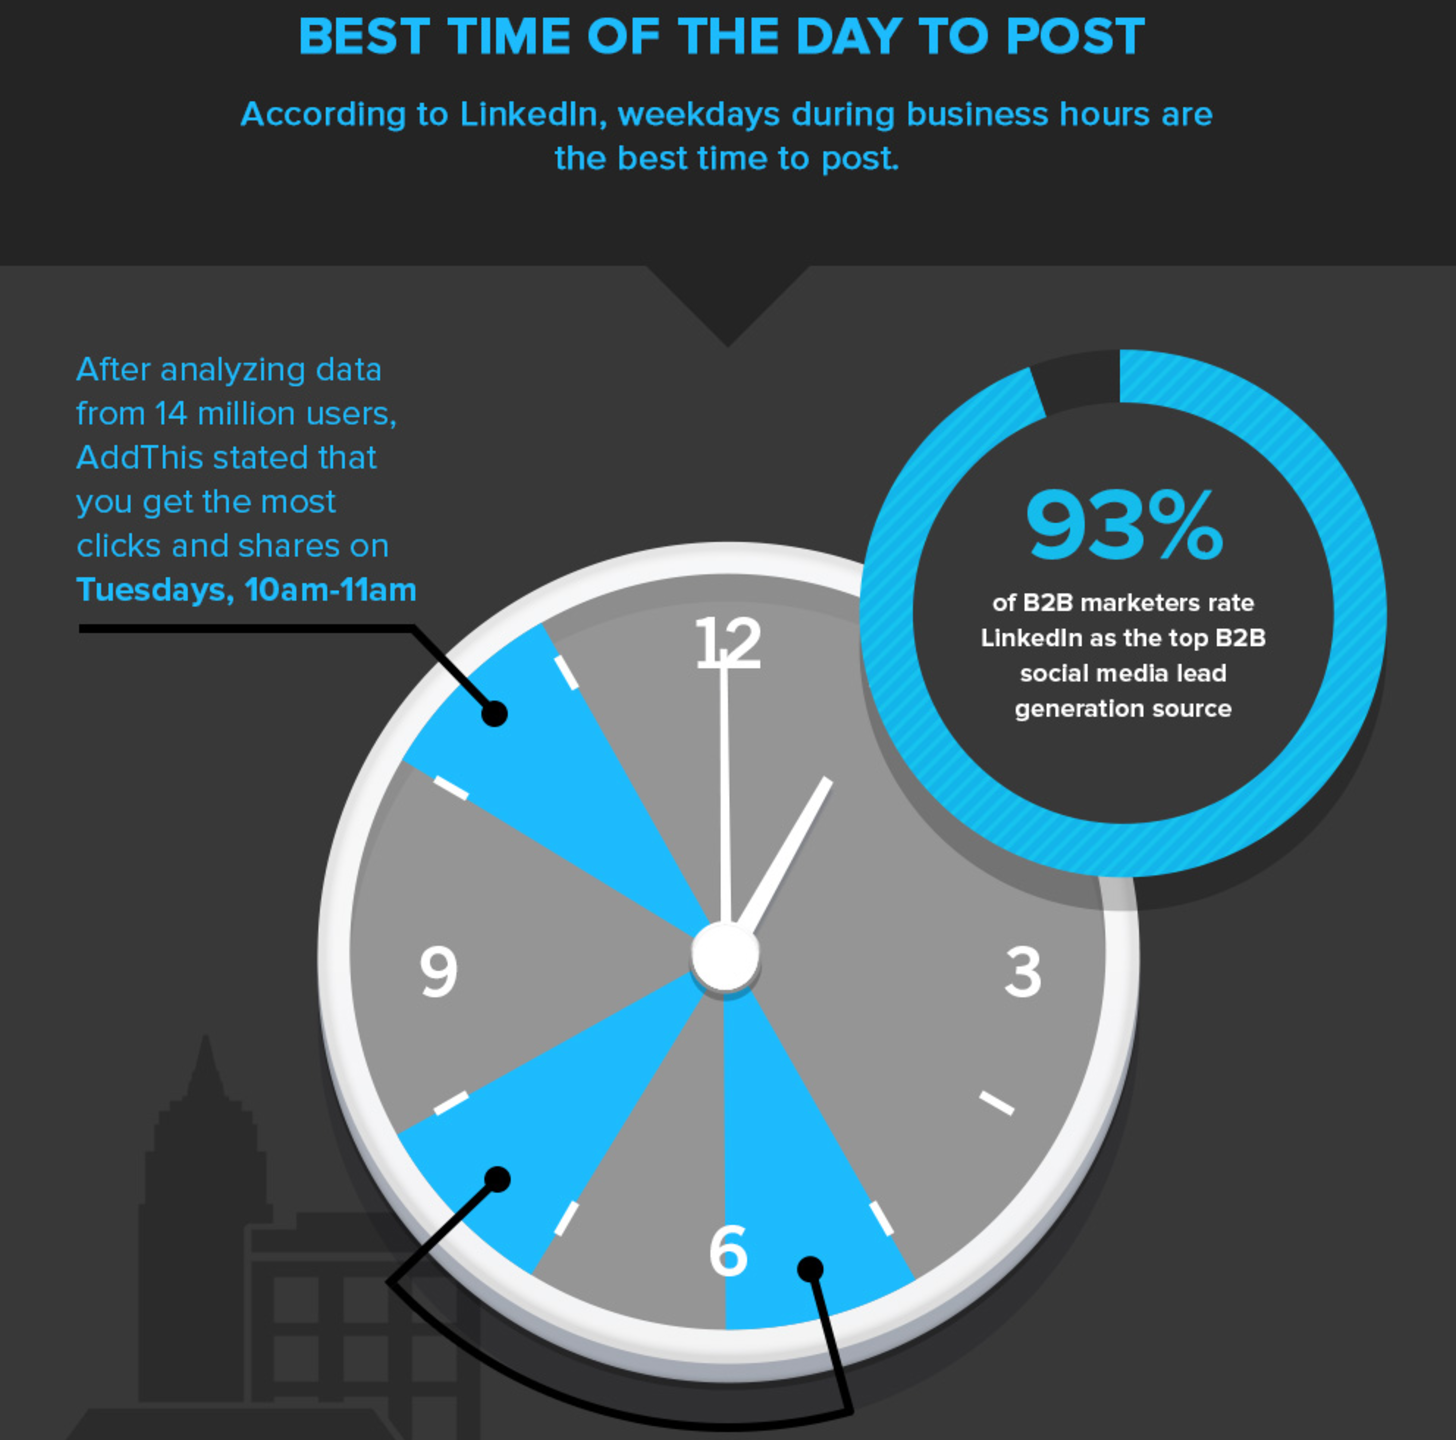 5 Most Popular Blog Posts That Will Get More Social Shares